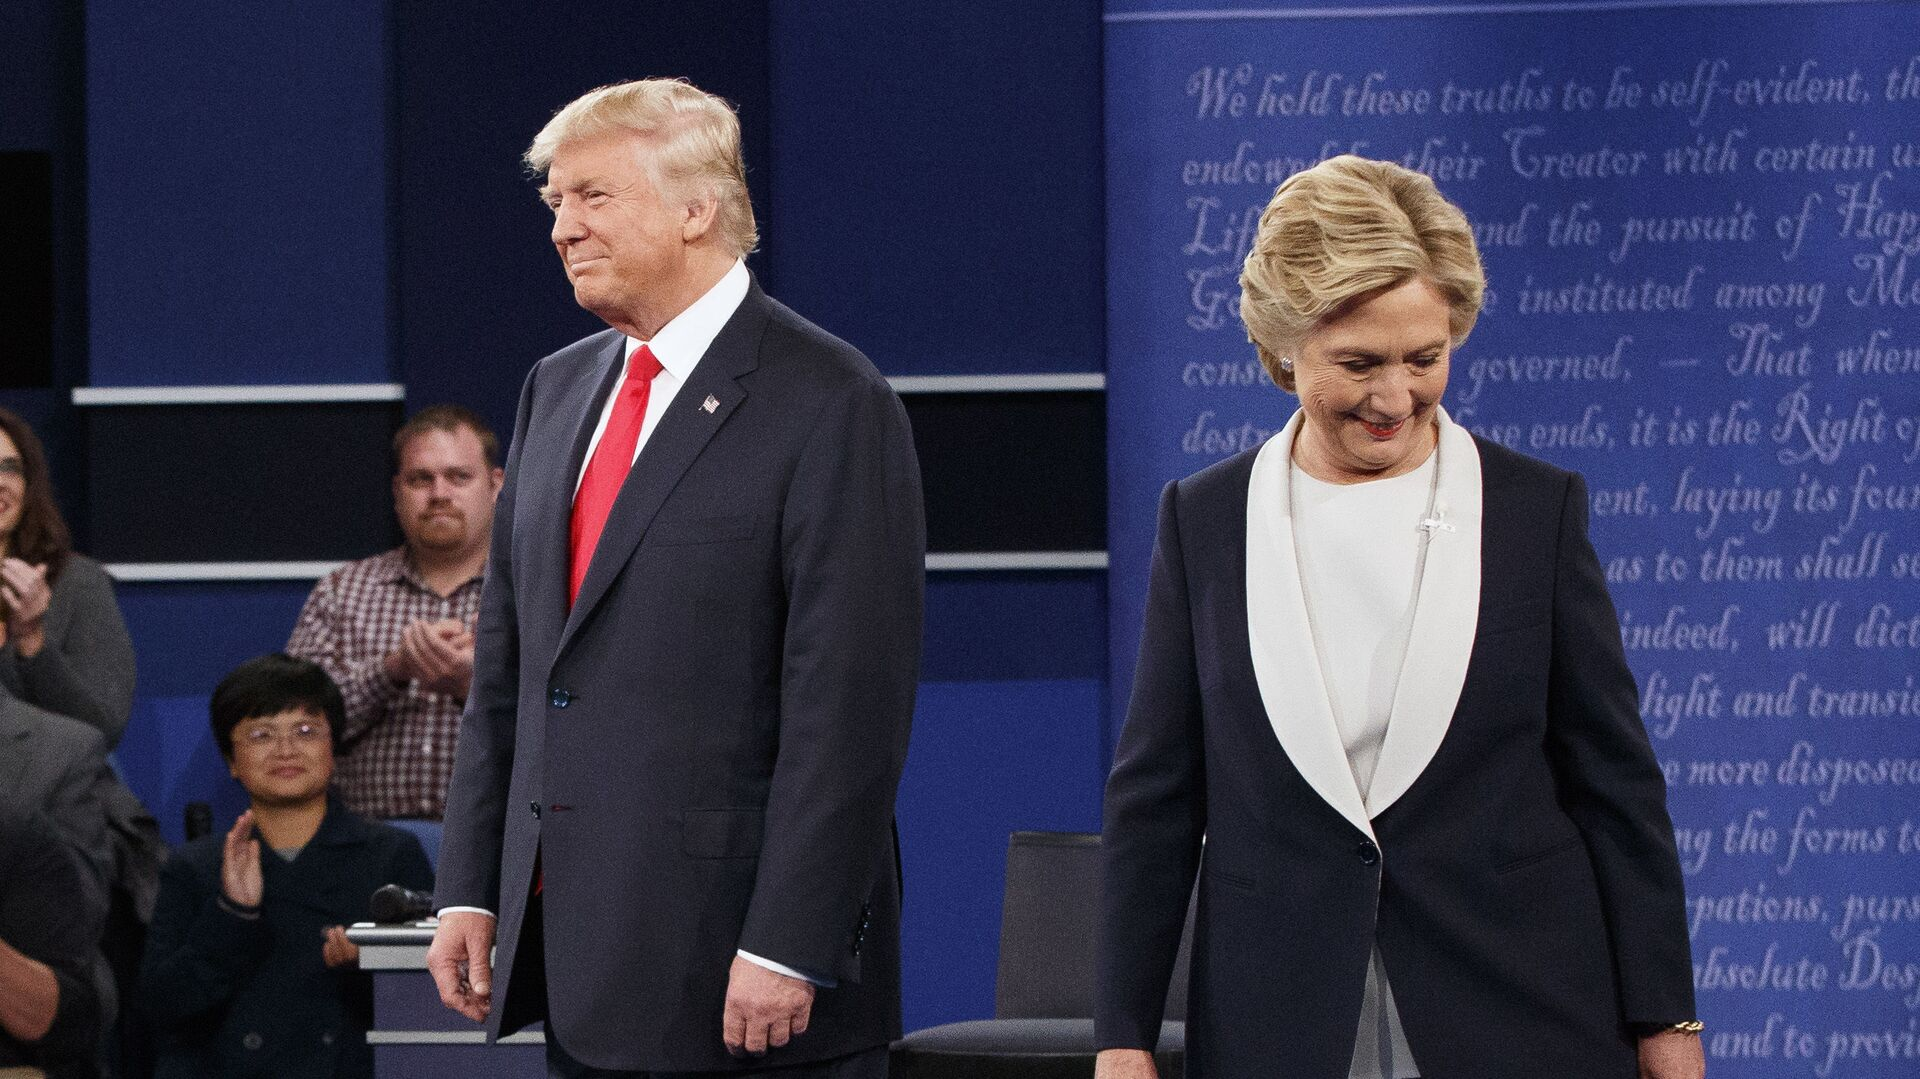 Republican presidential candidate Donald Trump, left, and Democratic presidential candidate Hillary Clinton walk to their seats after arriving for the second presidential debate at Washington University, Sunday, Oct. 9, 2016, in St. Louis - Sputnik International, 1920, 17.09.2021